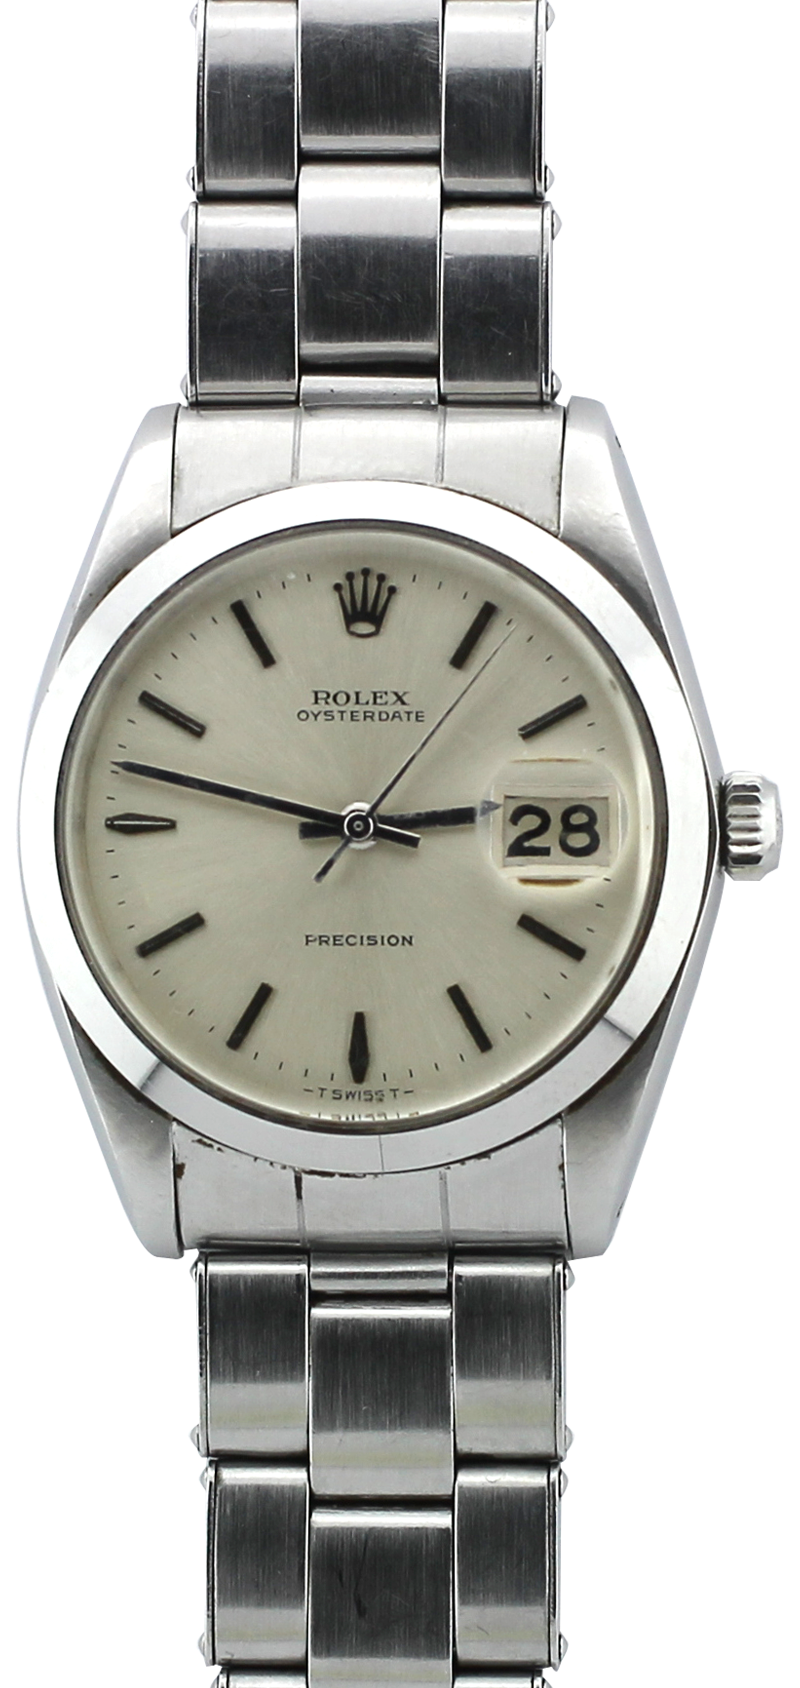 Rolex Stainless Steel Oyster Date 6694 on Rivet Bracelet with Box & Booklets